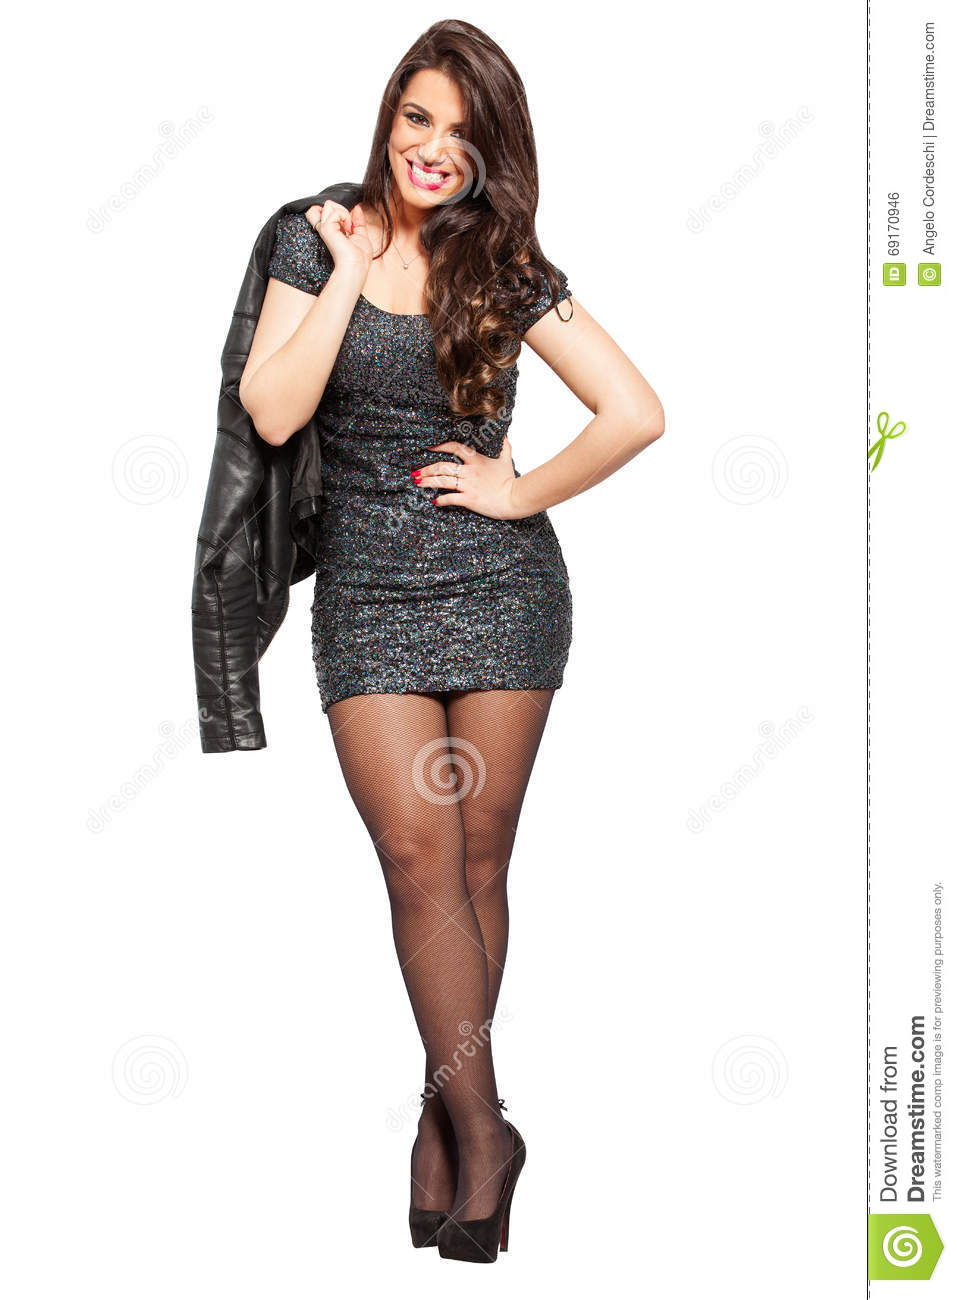 Businesswoman, smiling young woman on white. PNG available